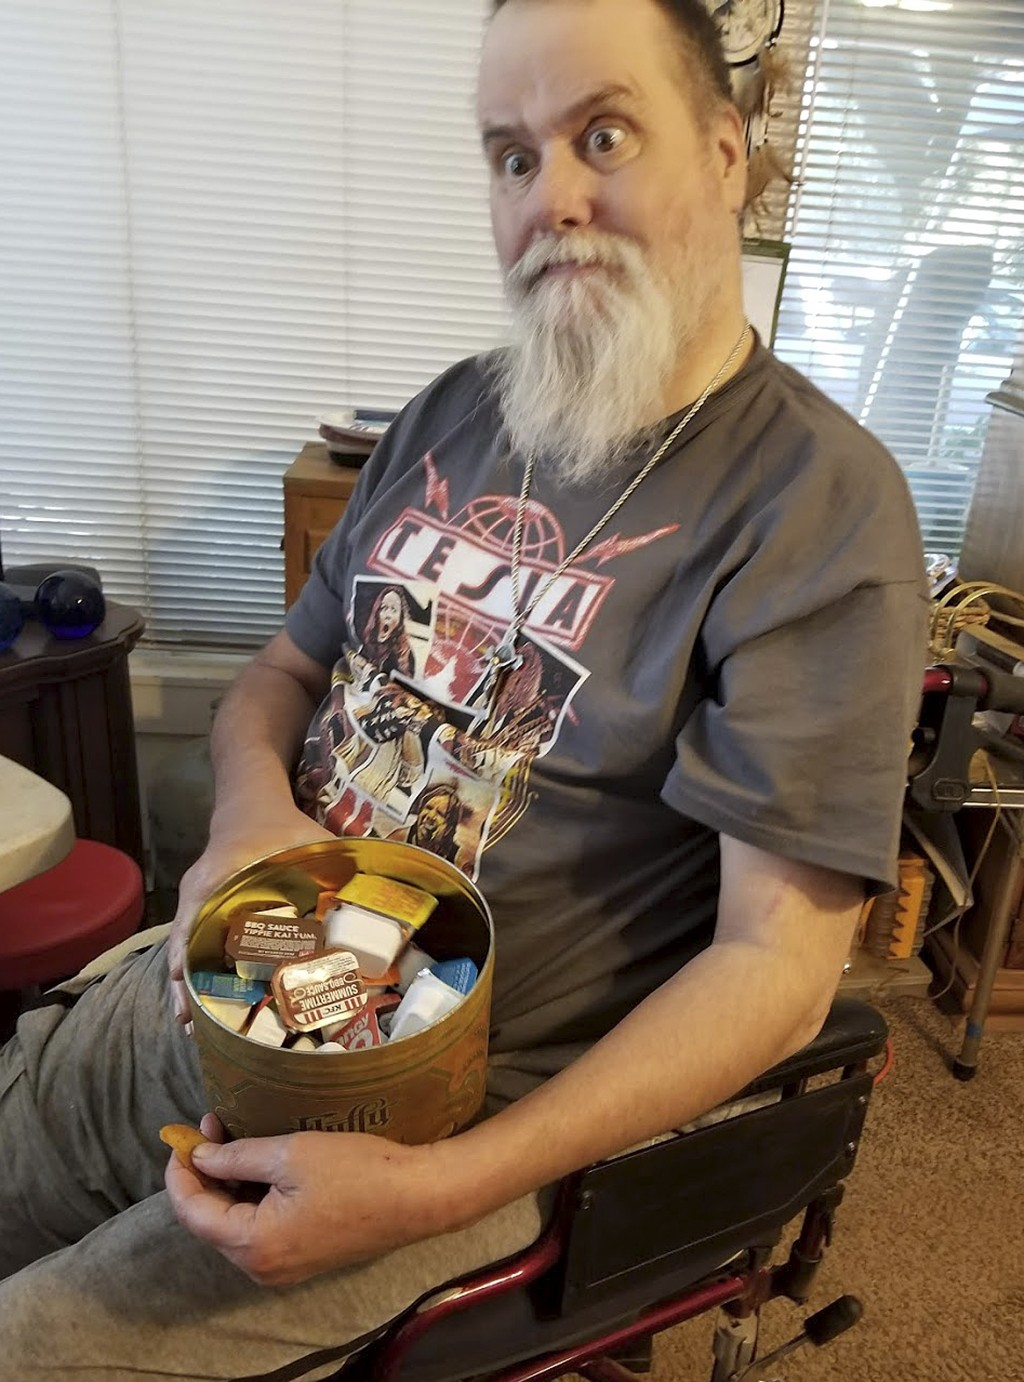 This undated photo provided by Cindy MacDonald shows Andrew Downer joking as he poses for photos holding packets of condiments. Downer, 54, had lost h...